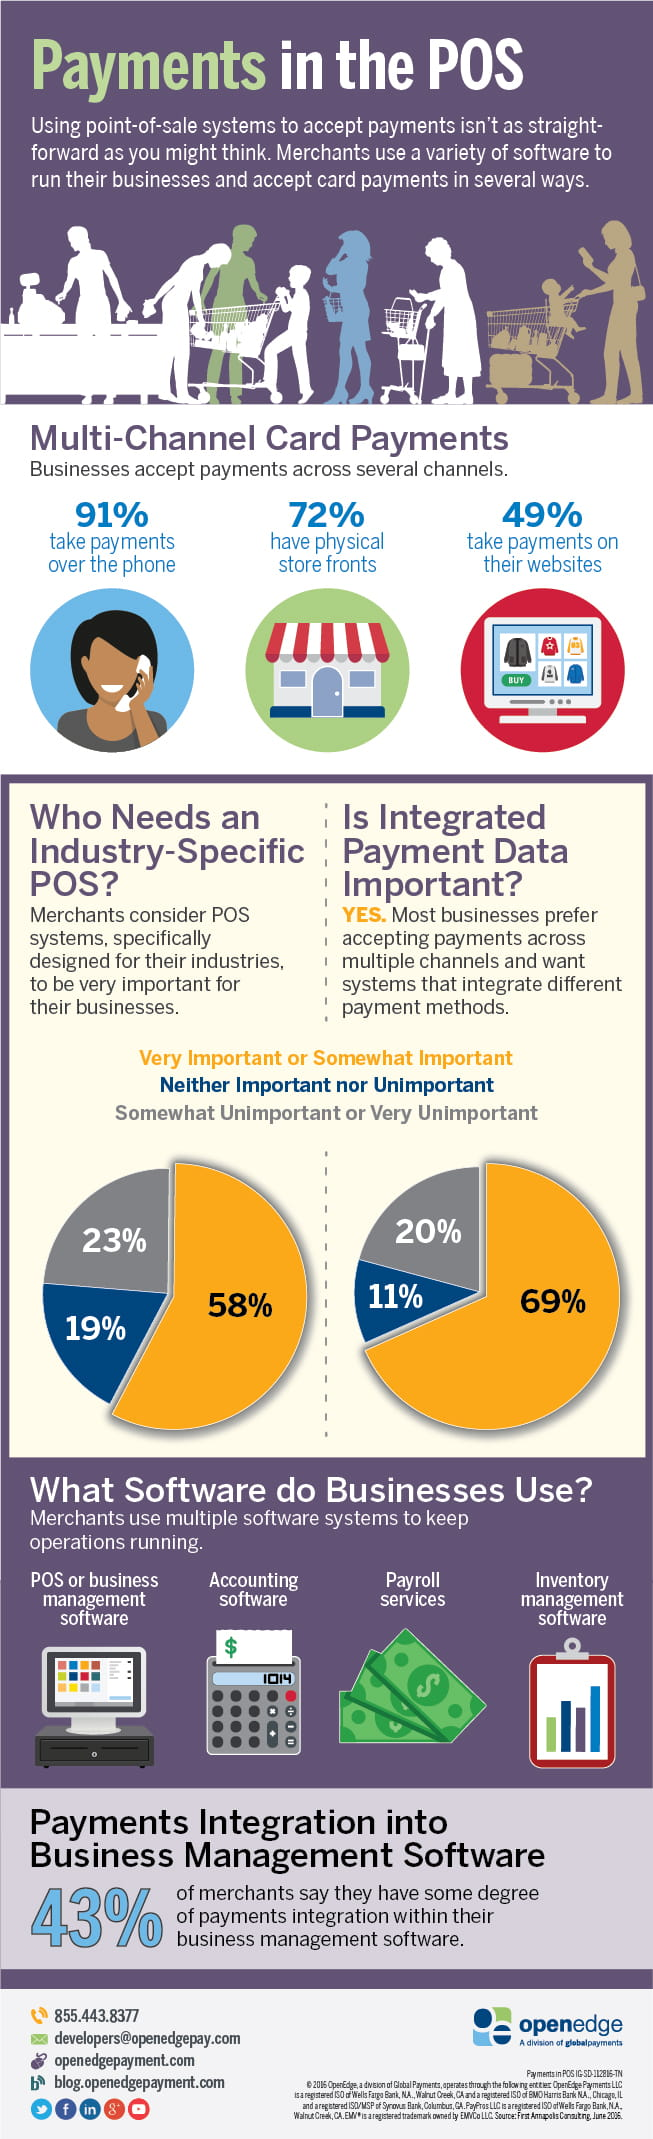 POS Payments Infographic